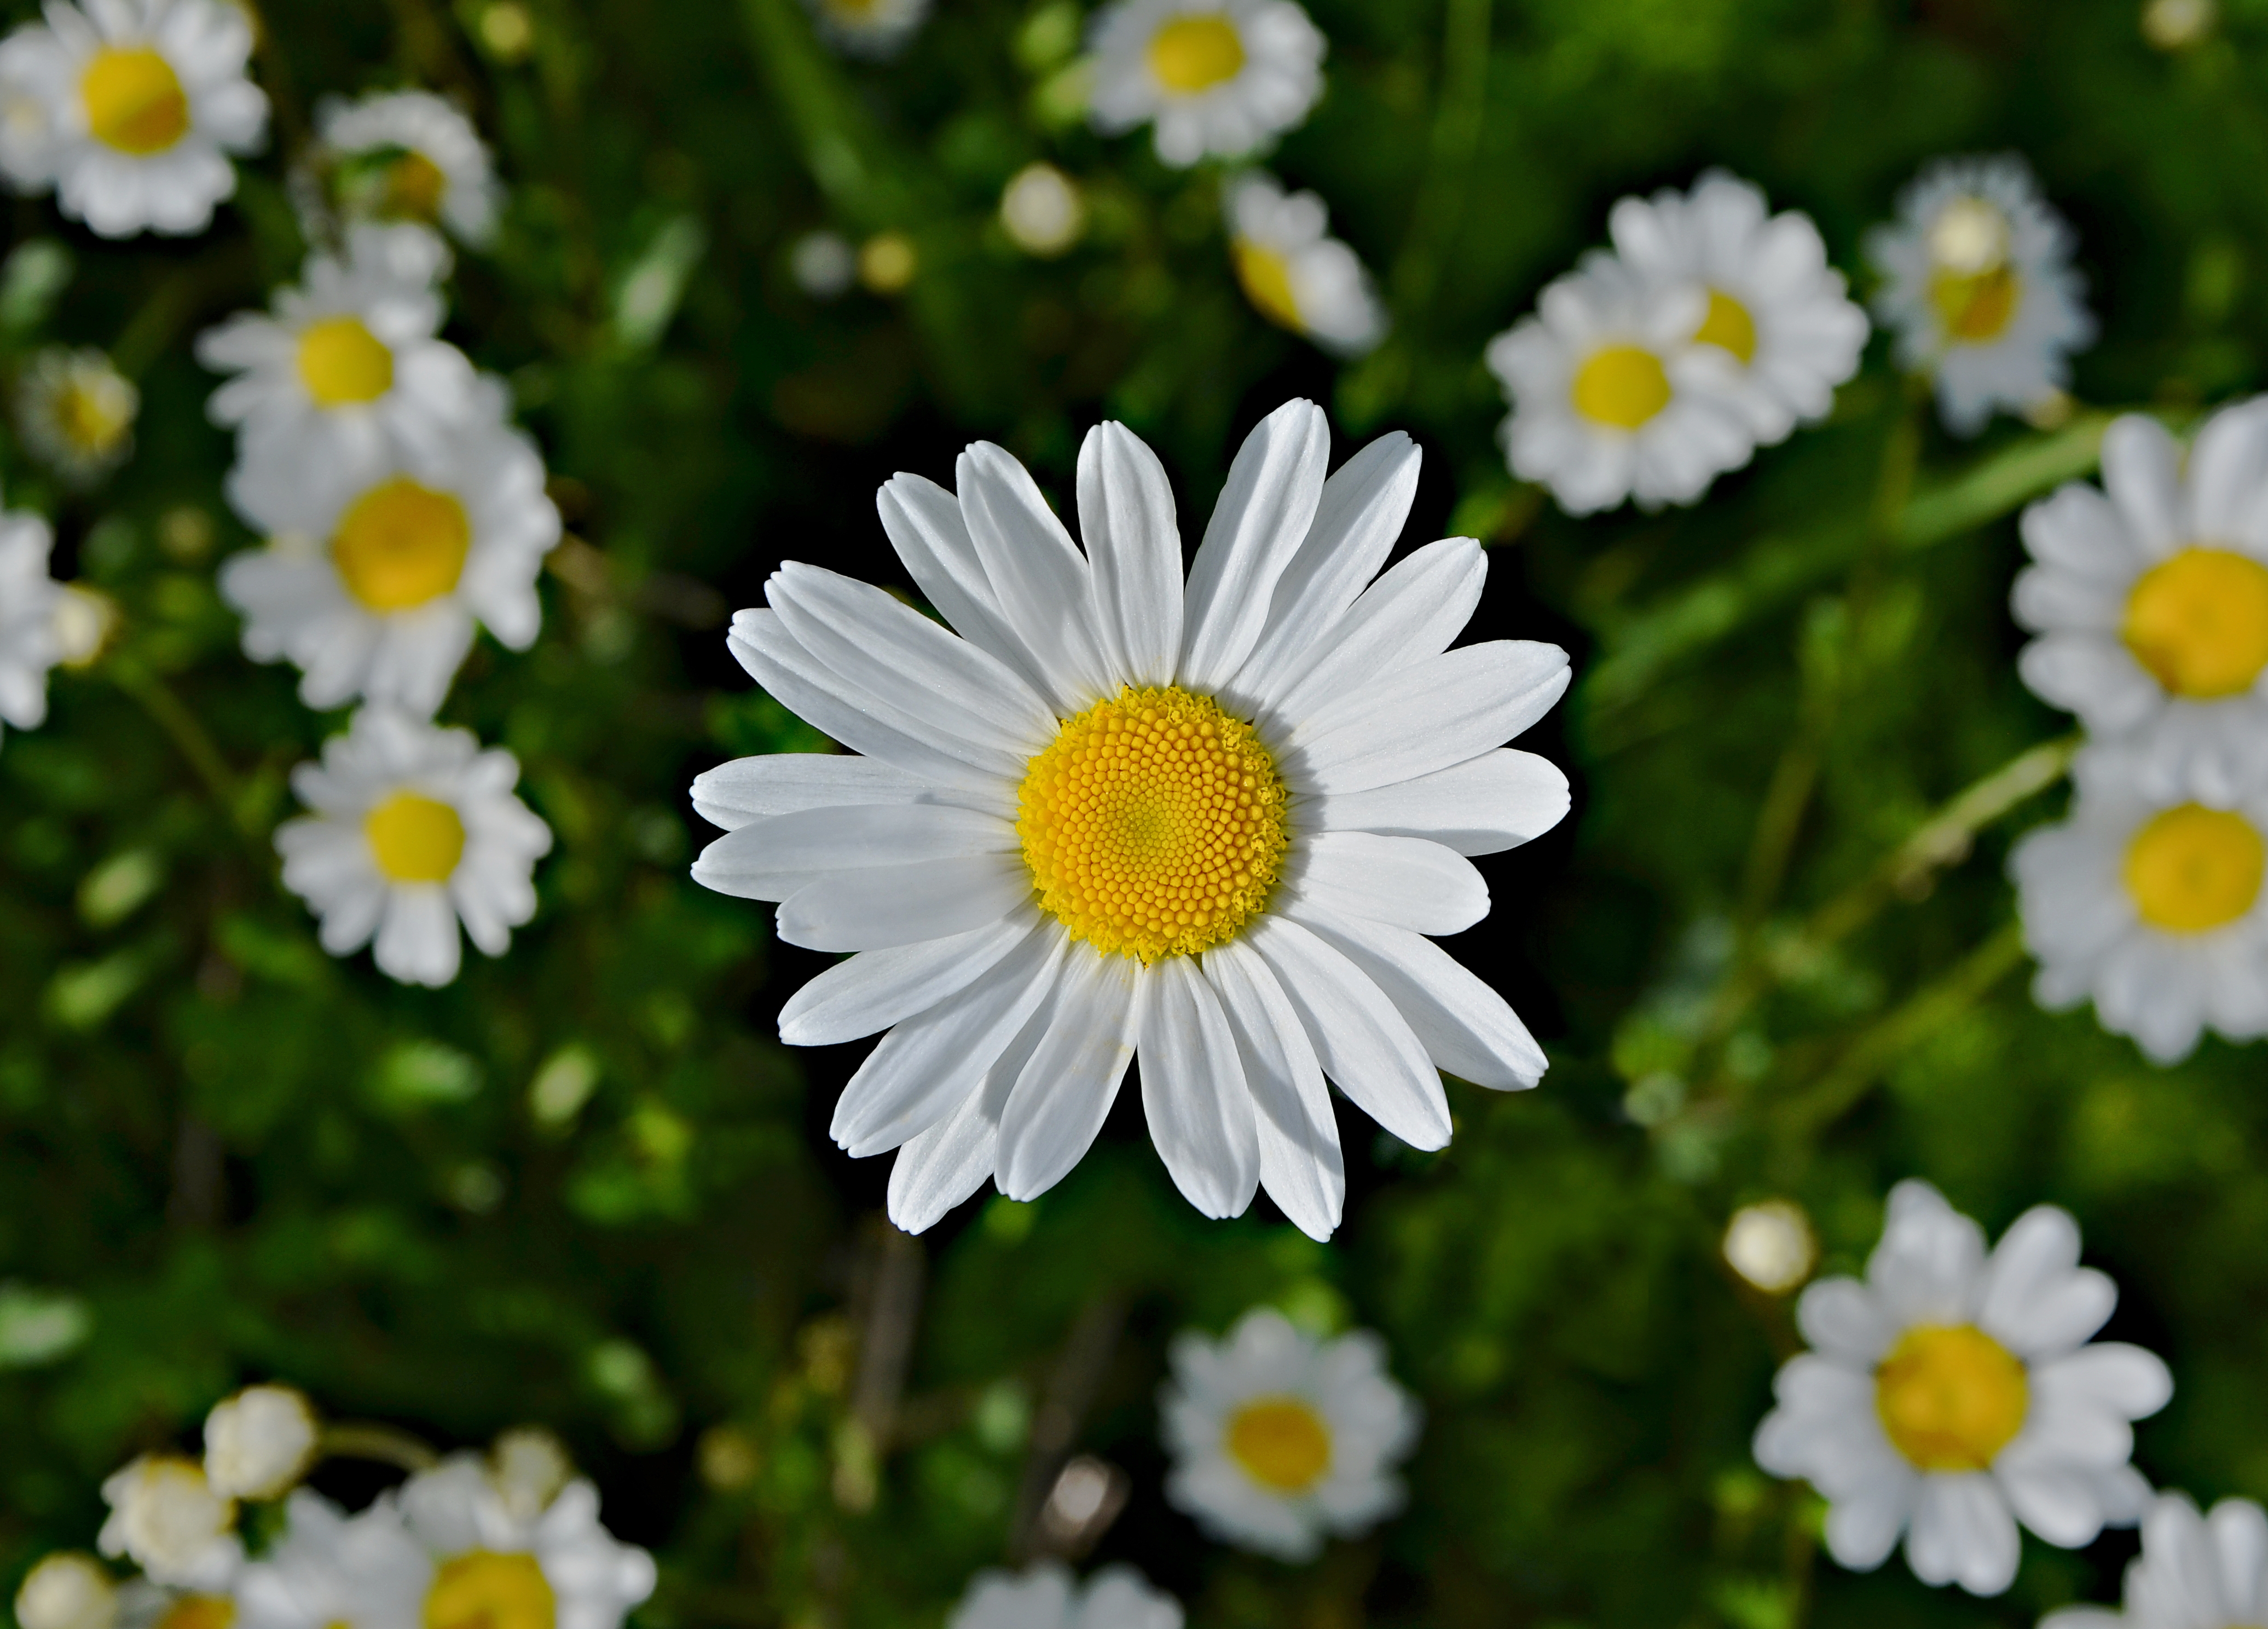 Marguerite High Quality Background on Wallpapers Vista